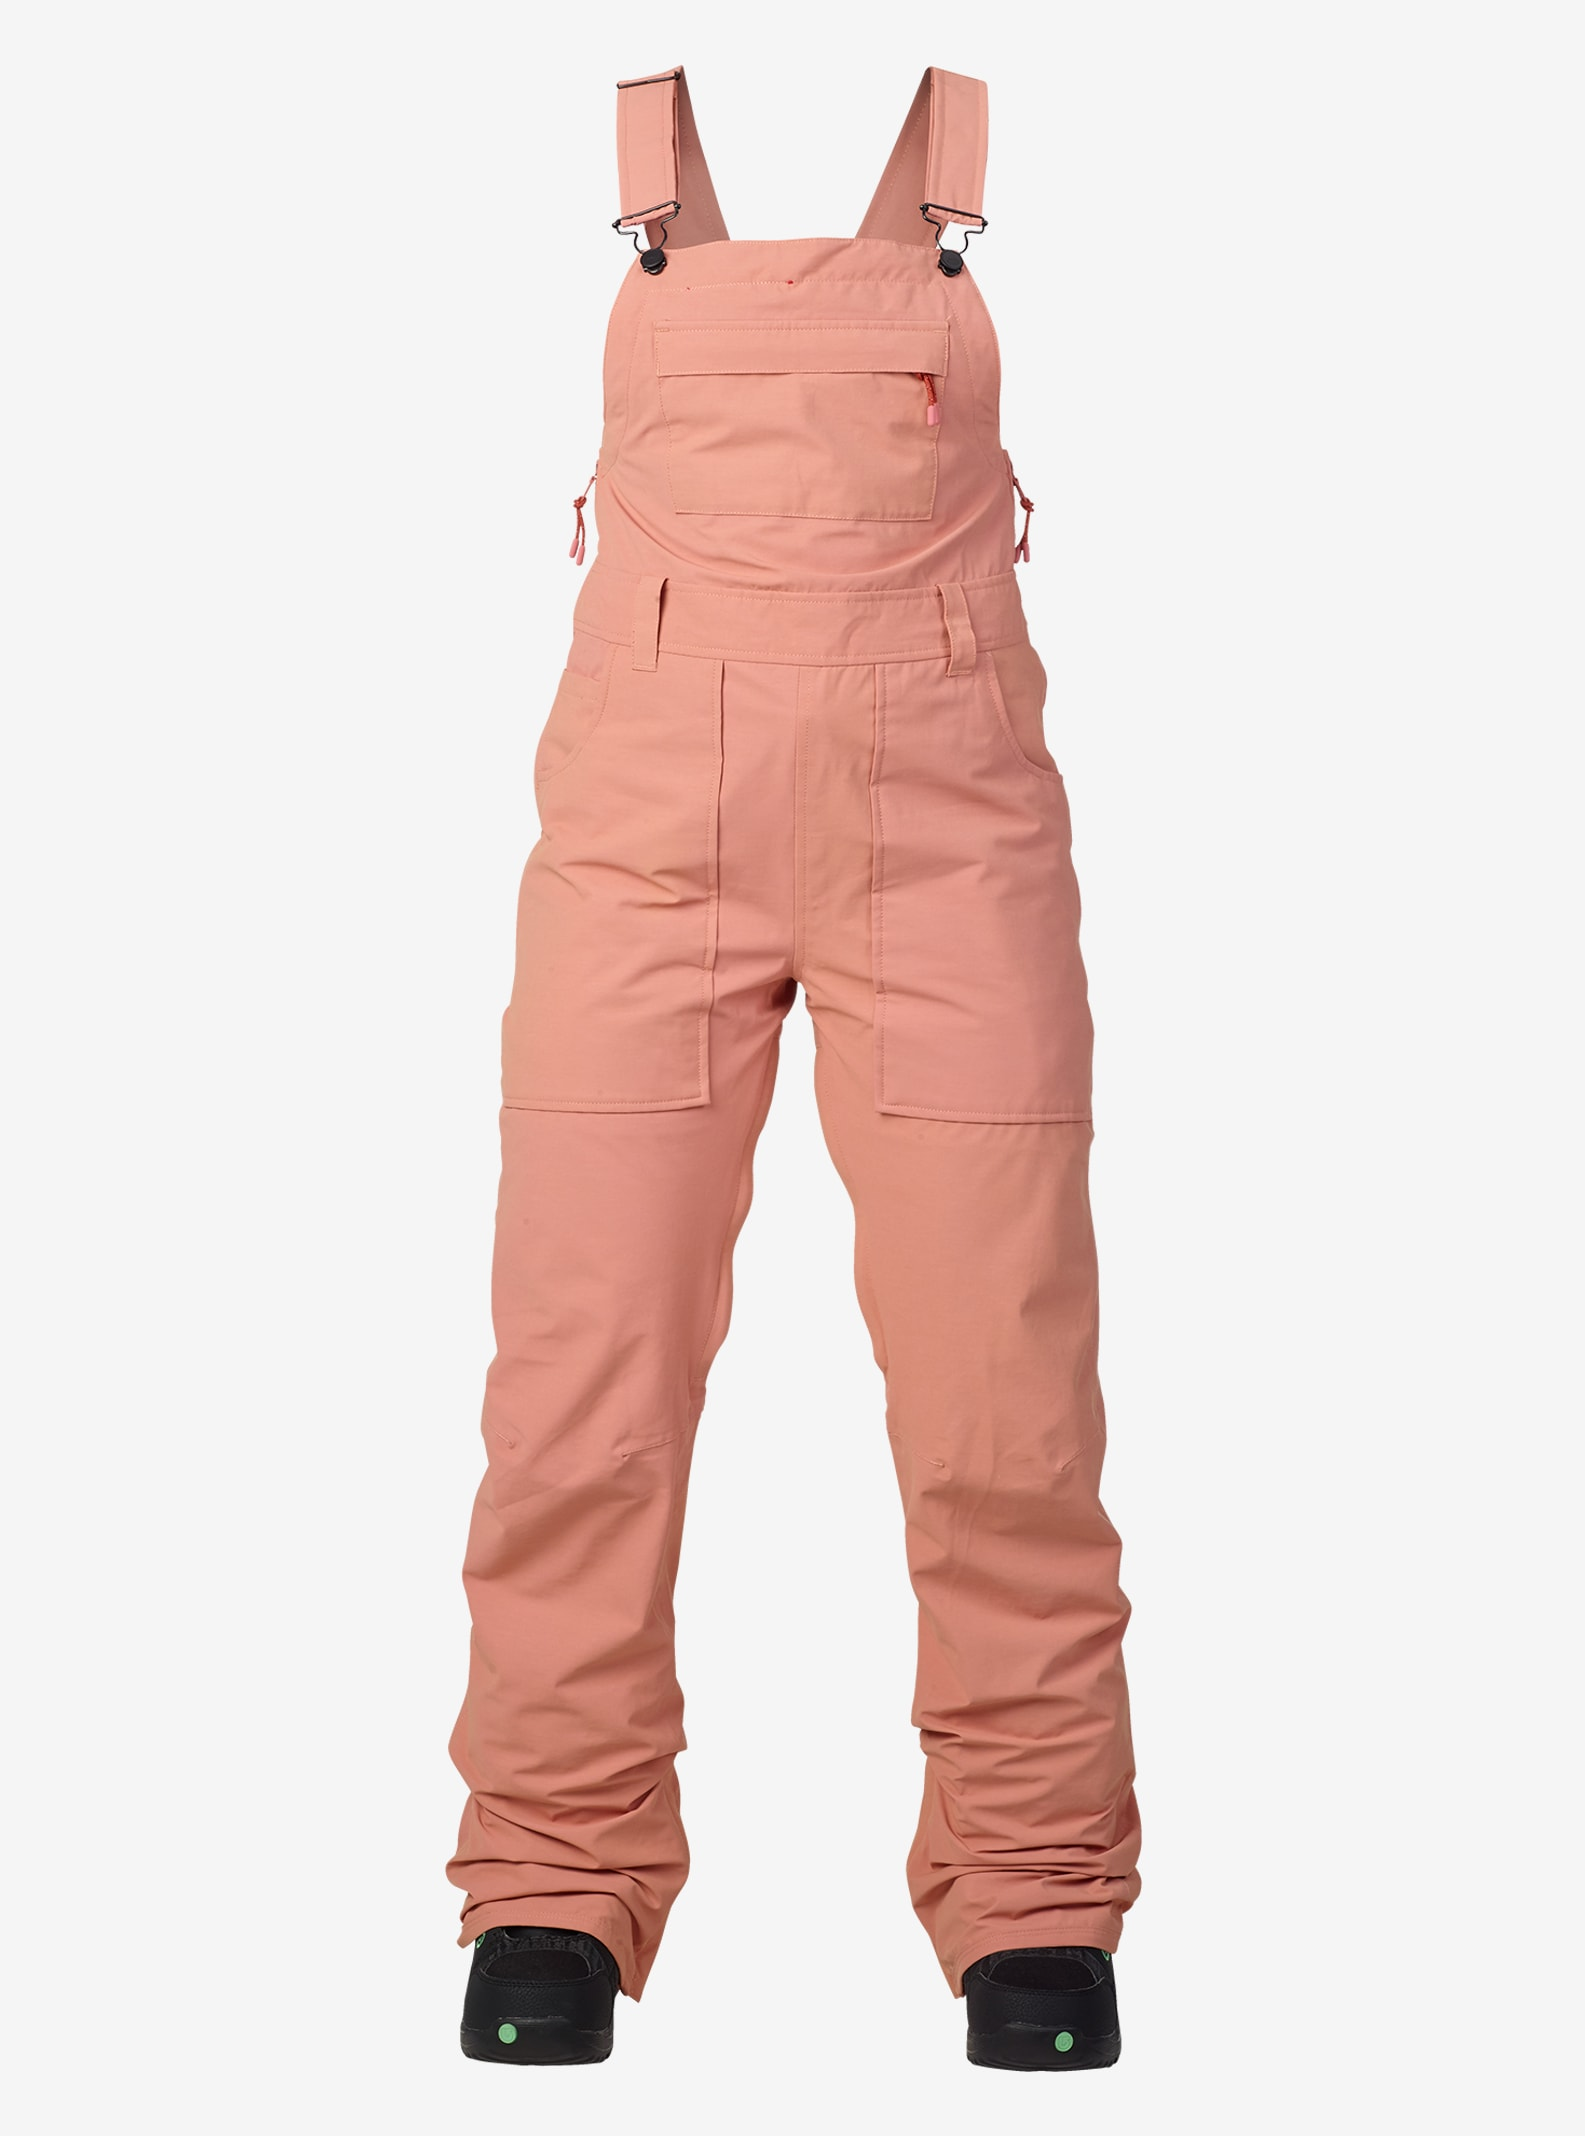 Women's Burton Avalon Bib Pant shown in Dusty Rose Washed